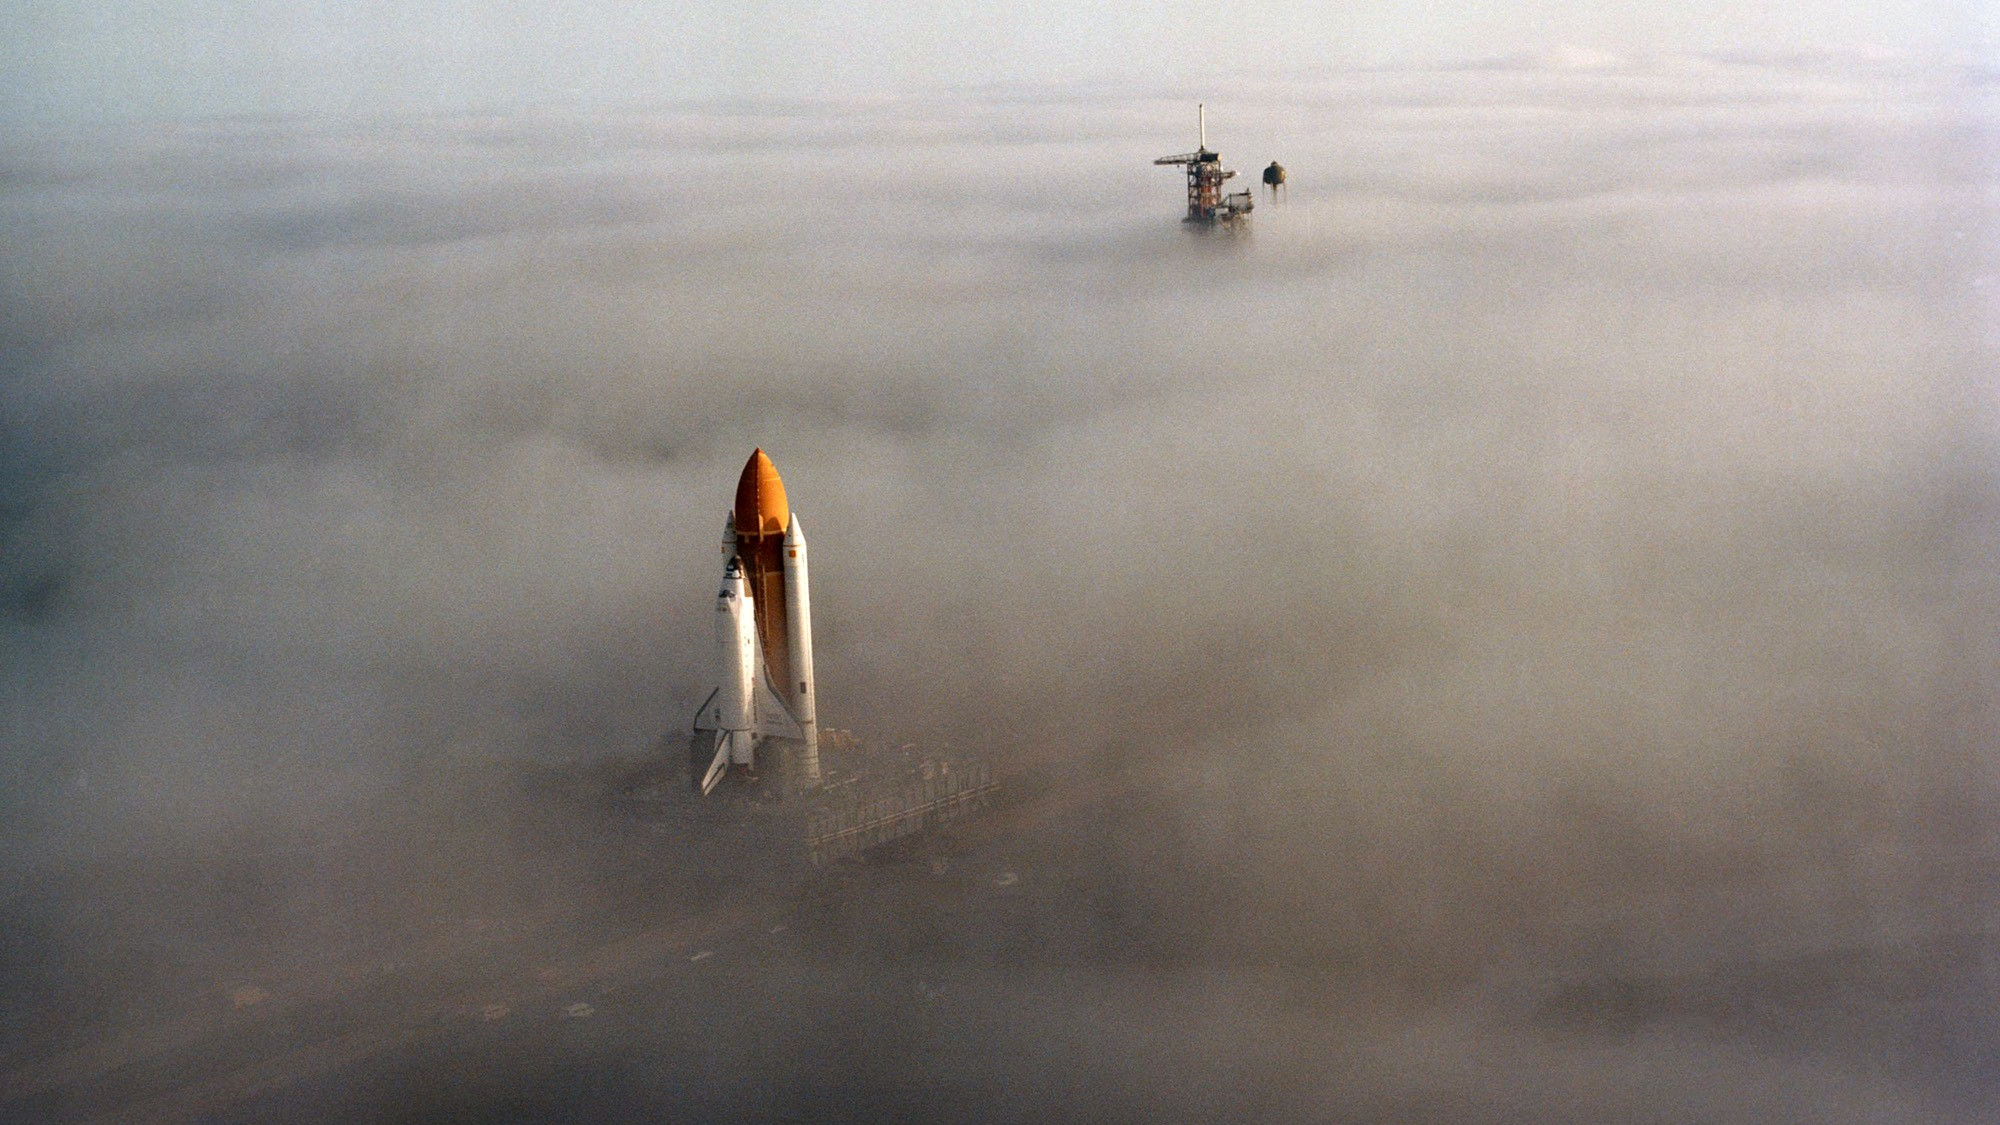 space shuttle challenger ntsb report - photo #26